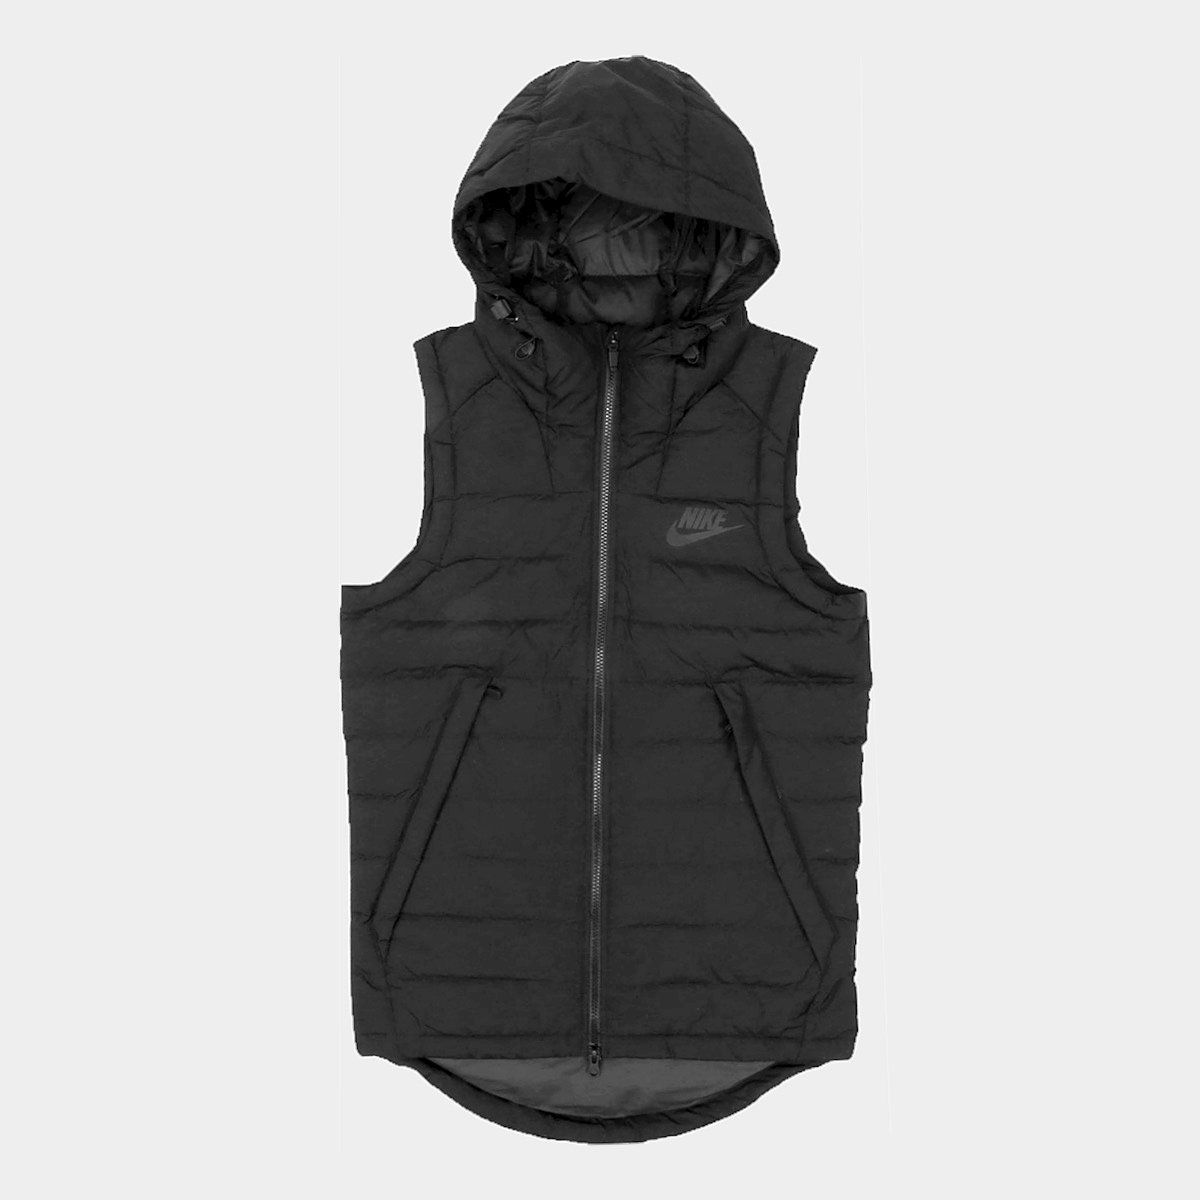 Colete Nike M Nsw Down Fill Vest